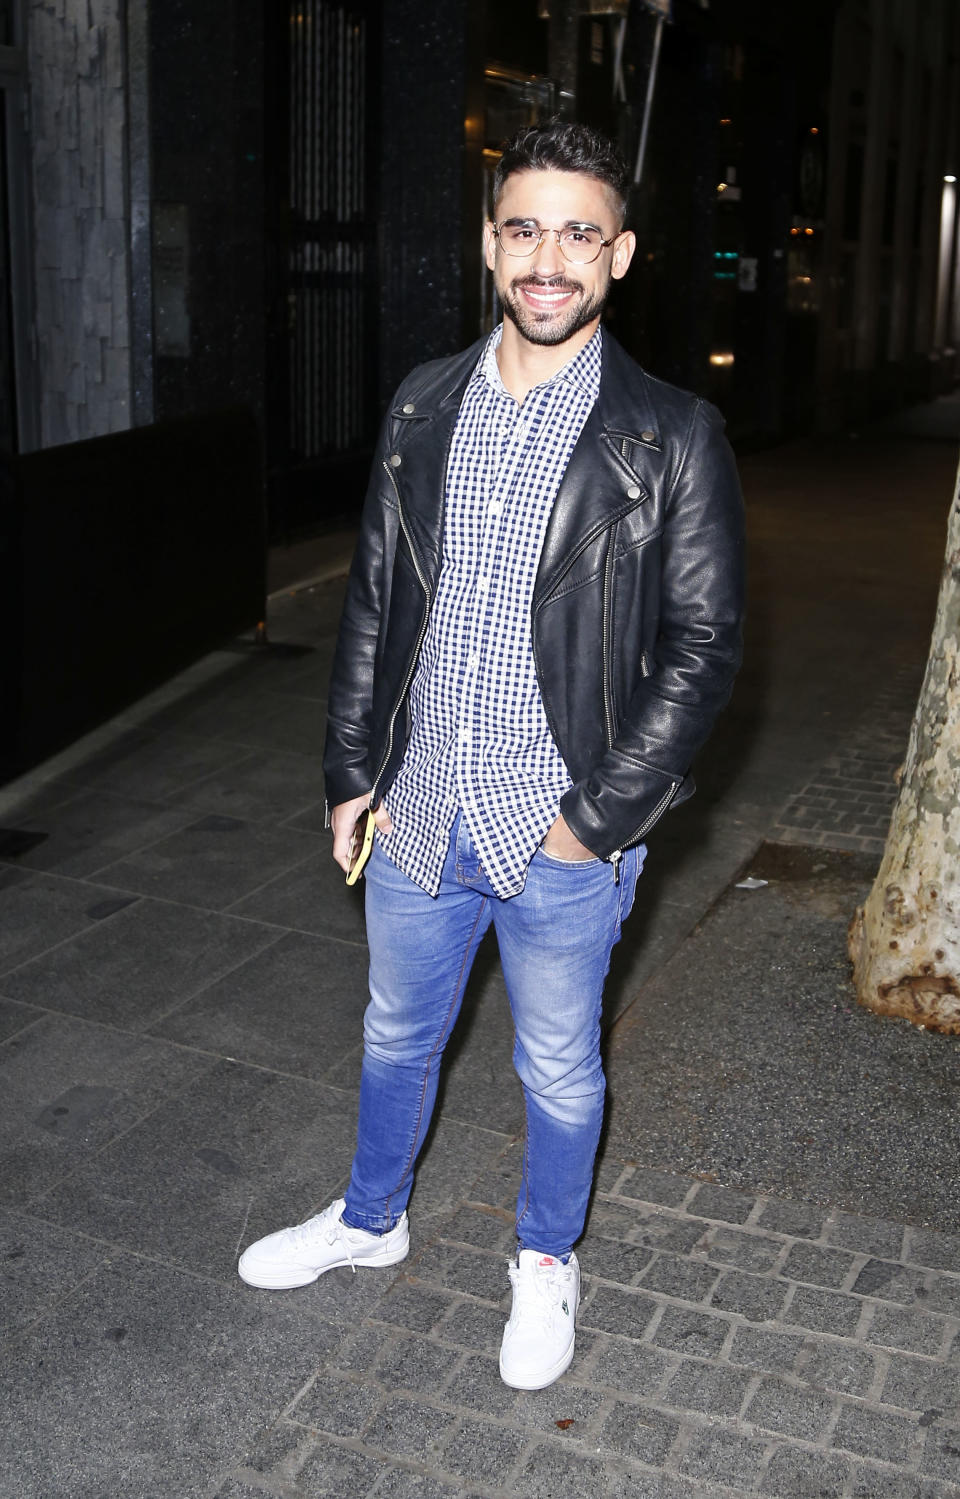 MADRID, SPAIN - NOVEMBER 08: Miguel Frigenti is seen on Madrid, Spain. (Photo by Europa Press Entertainment/Europa Press via Getty Images)